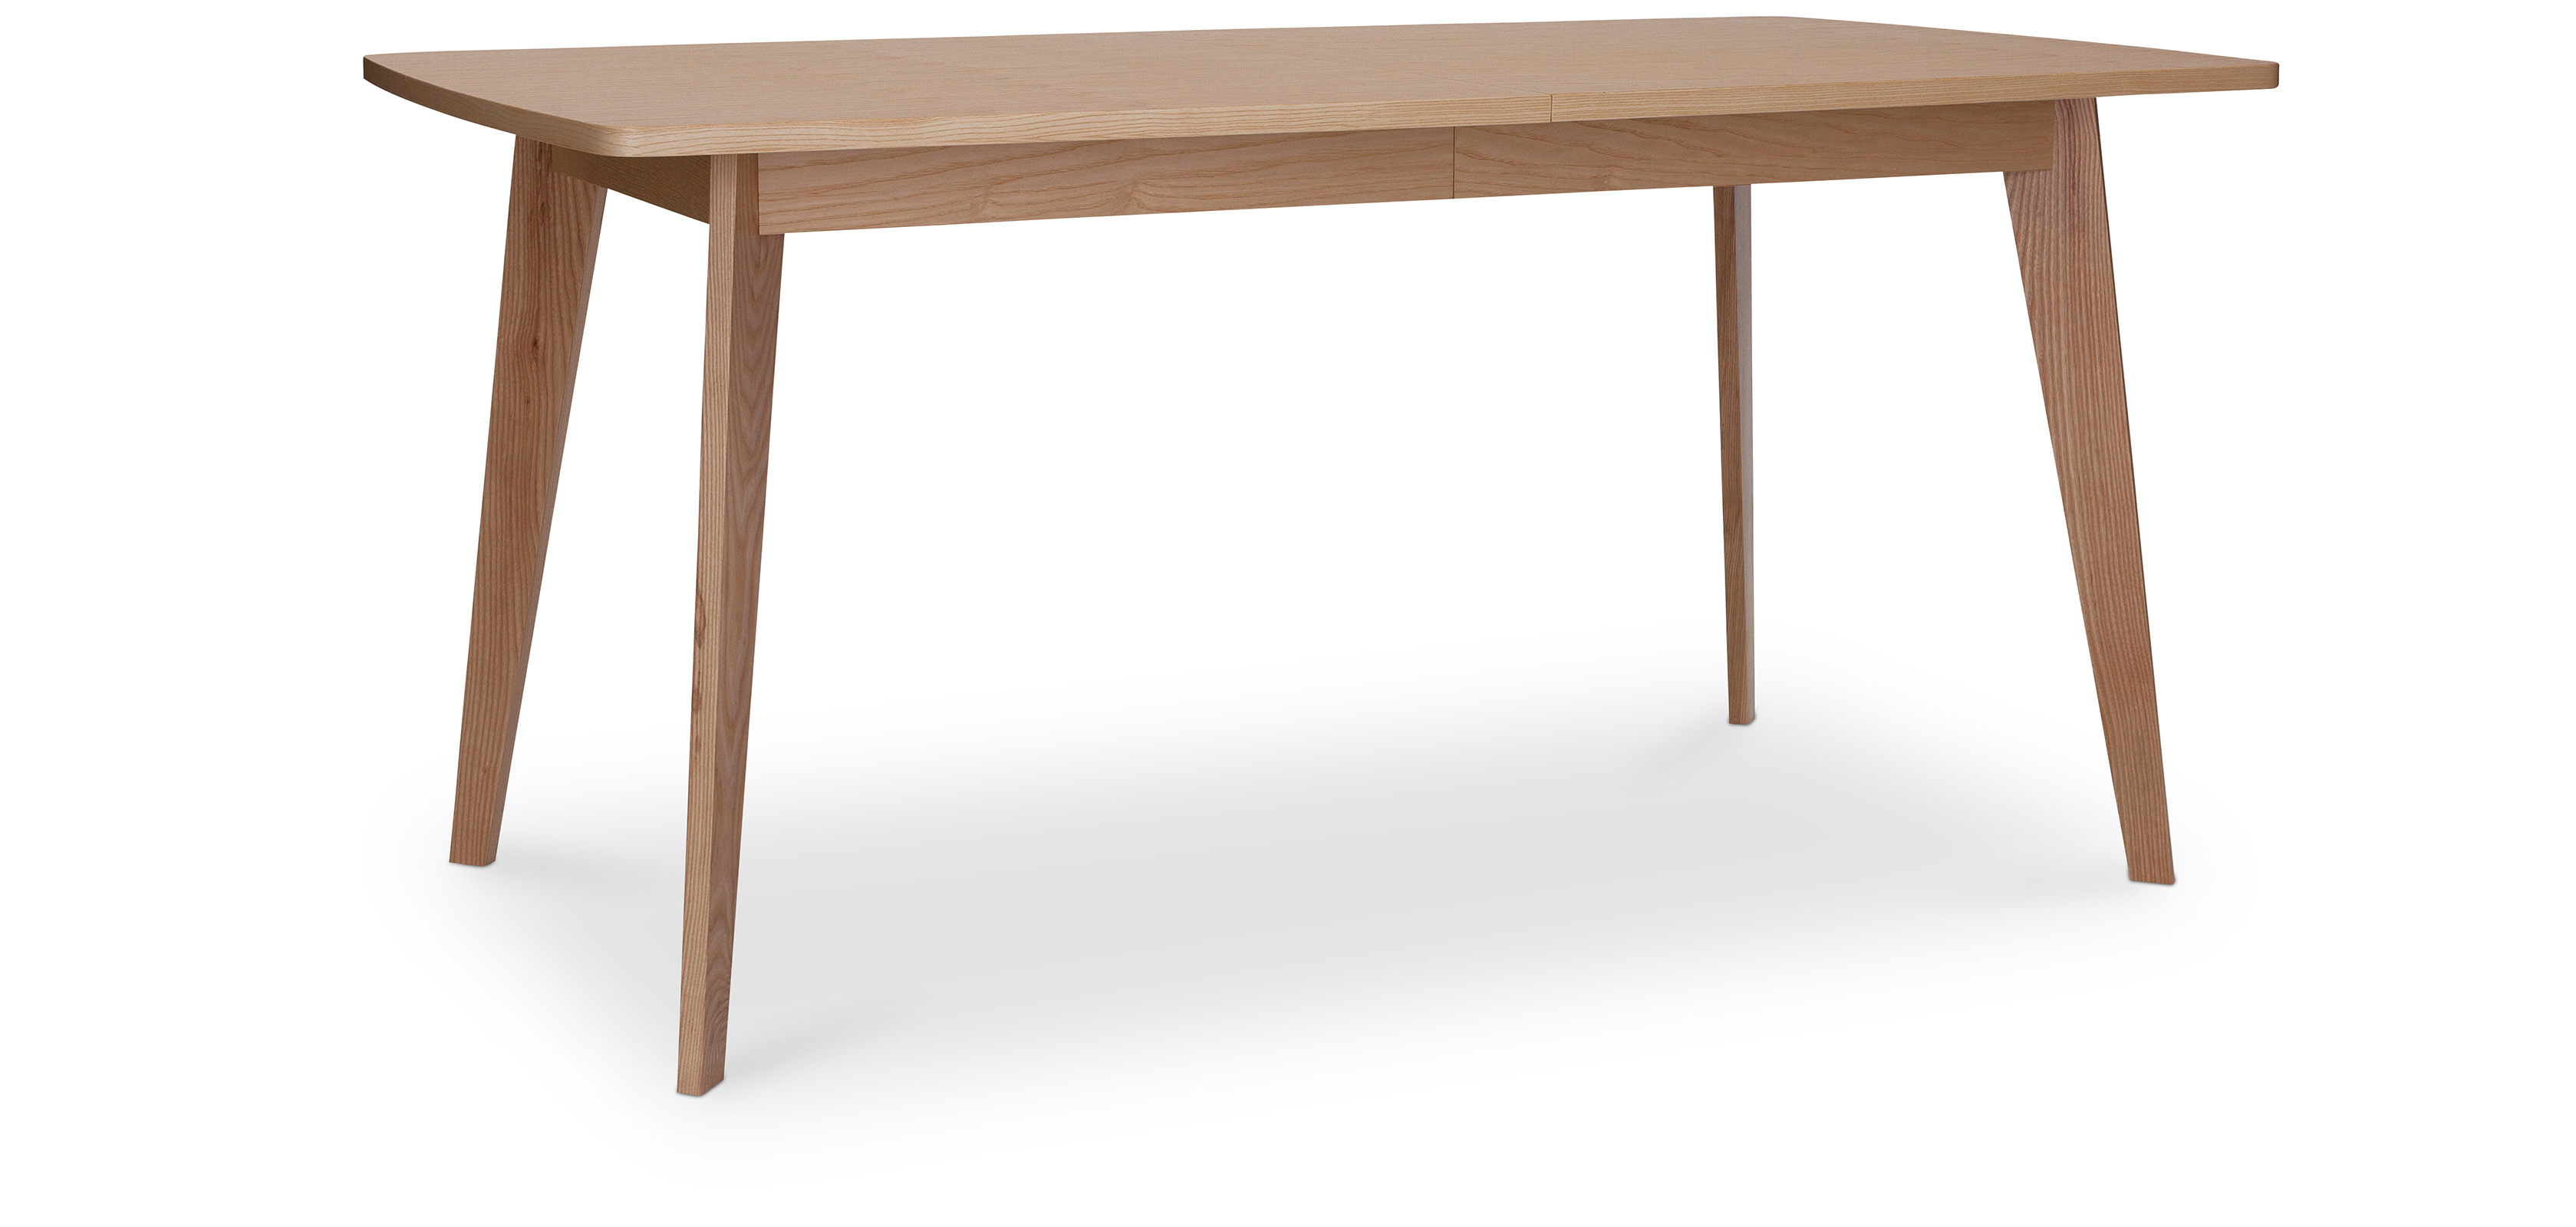 Table de salle manger ajustable en bois style scandinave for Table scandinave bois